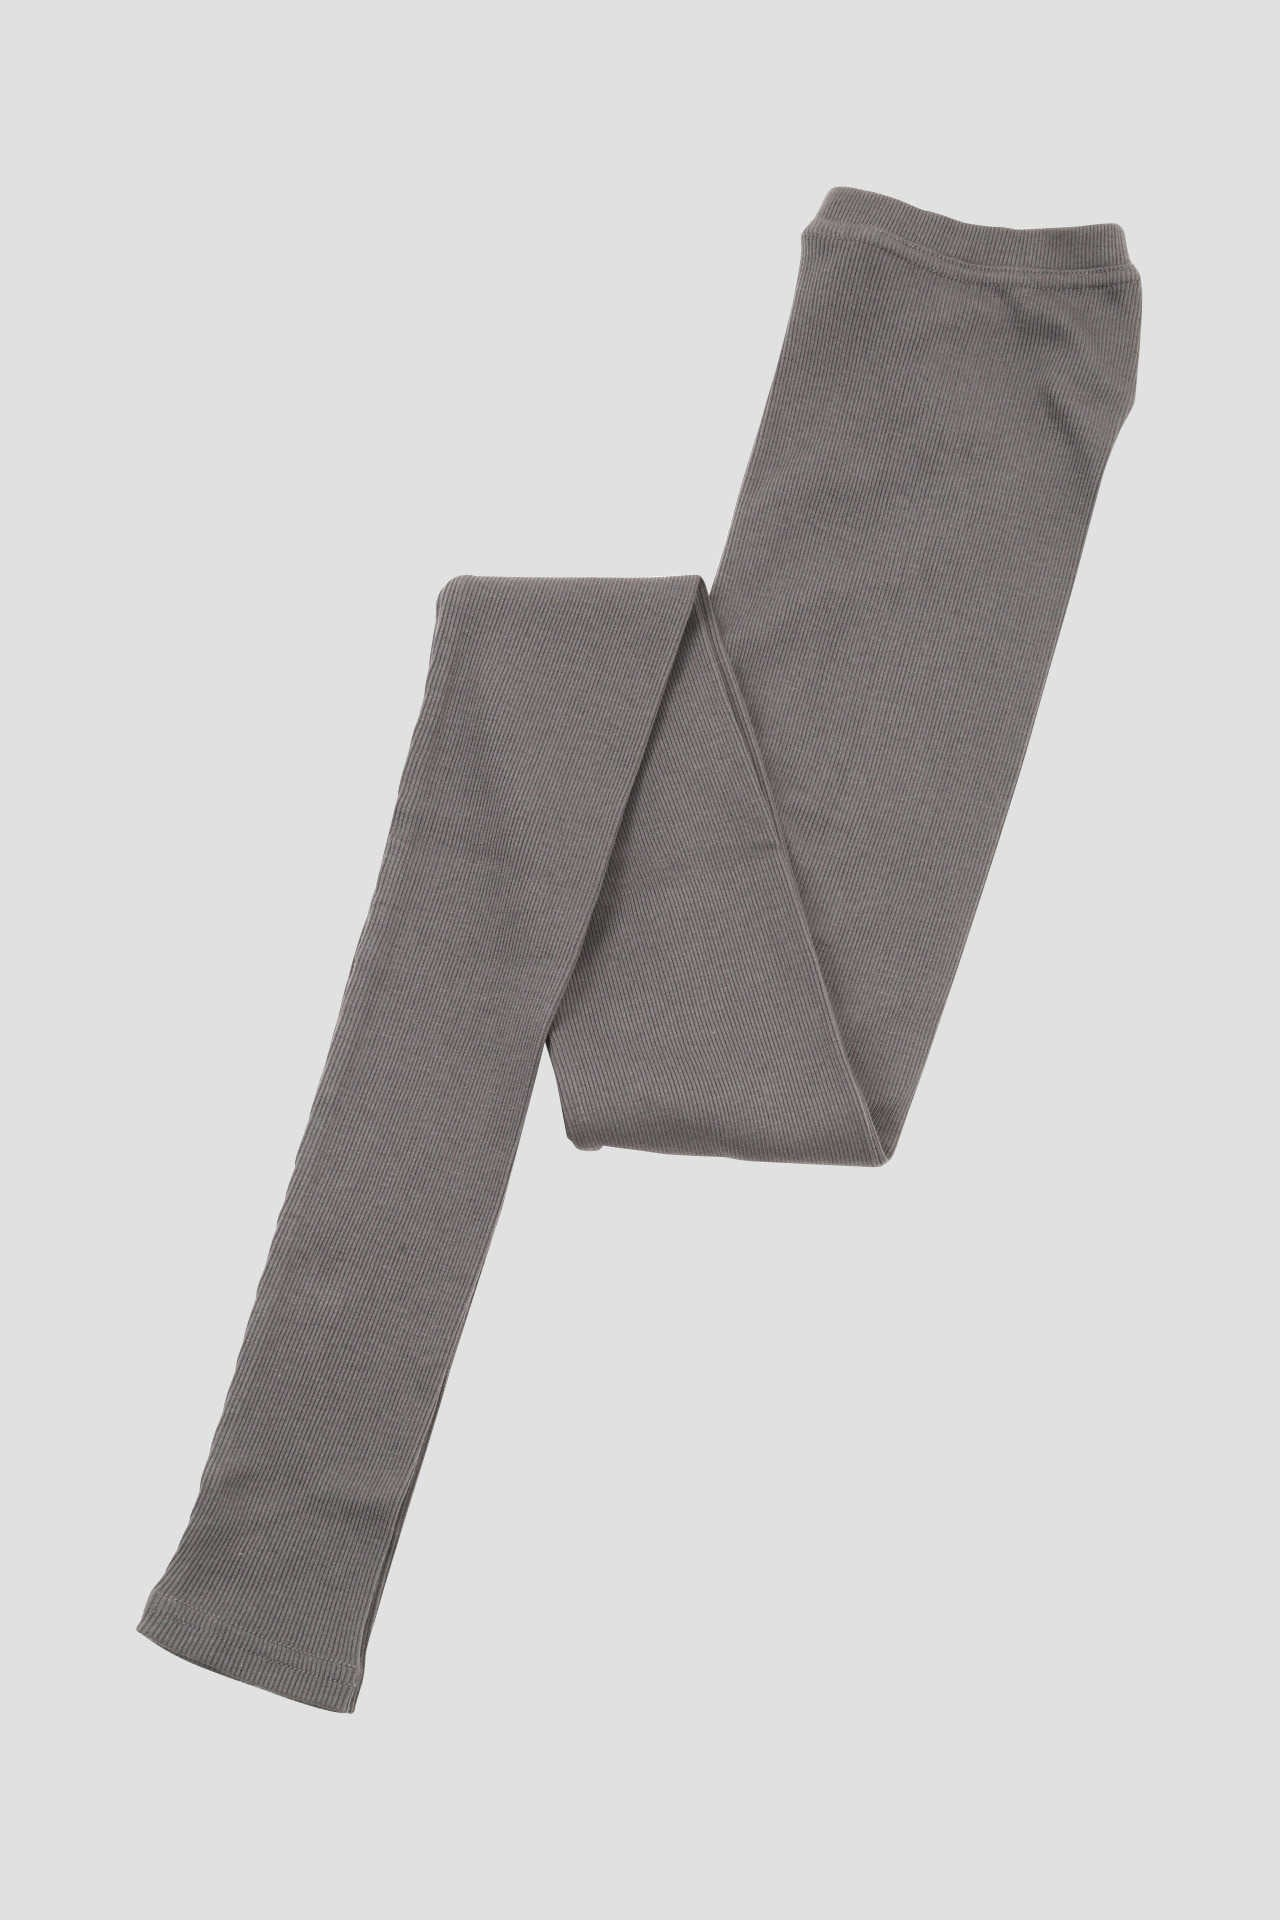 COTTON CASHMERE LEGGINGS6